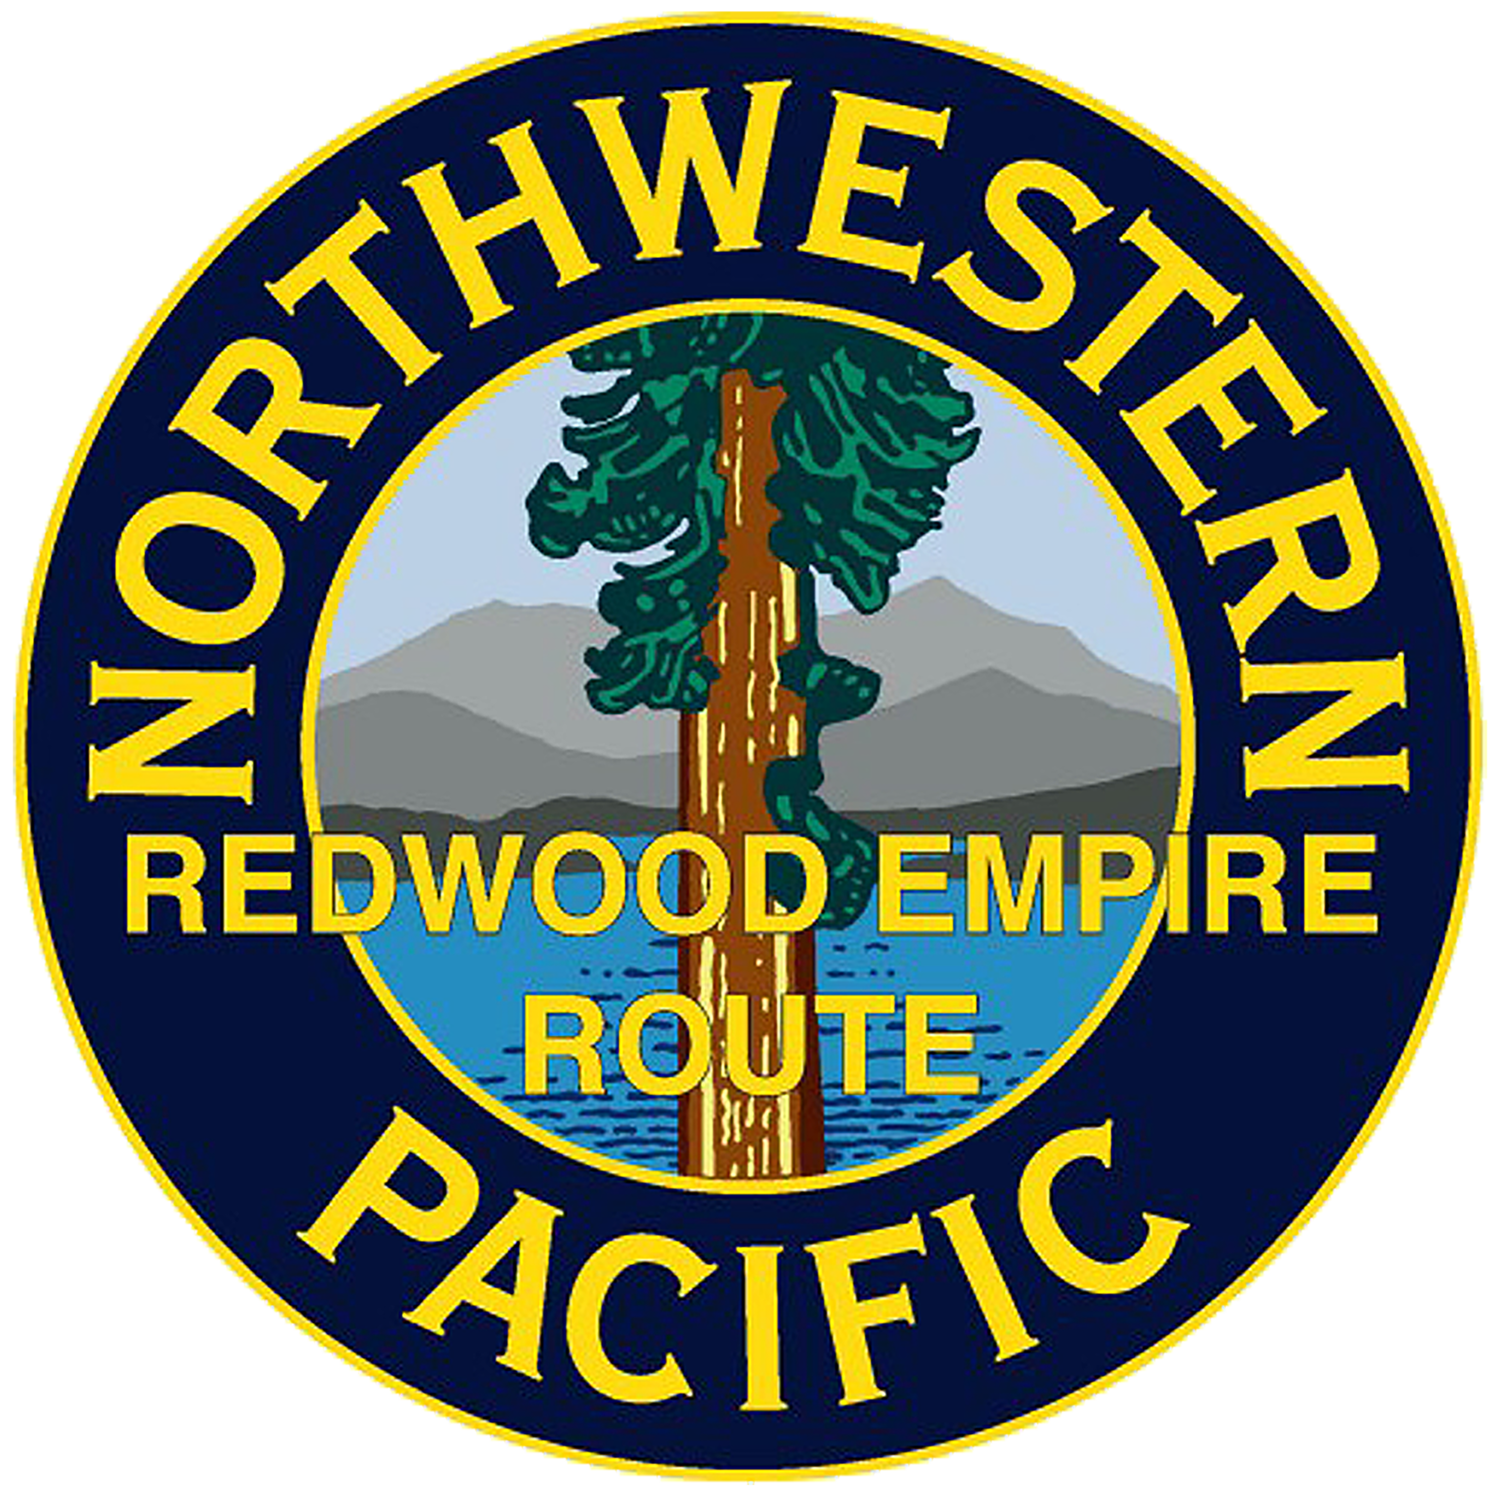 Northwestern Pacific Railroad Company